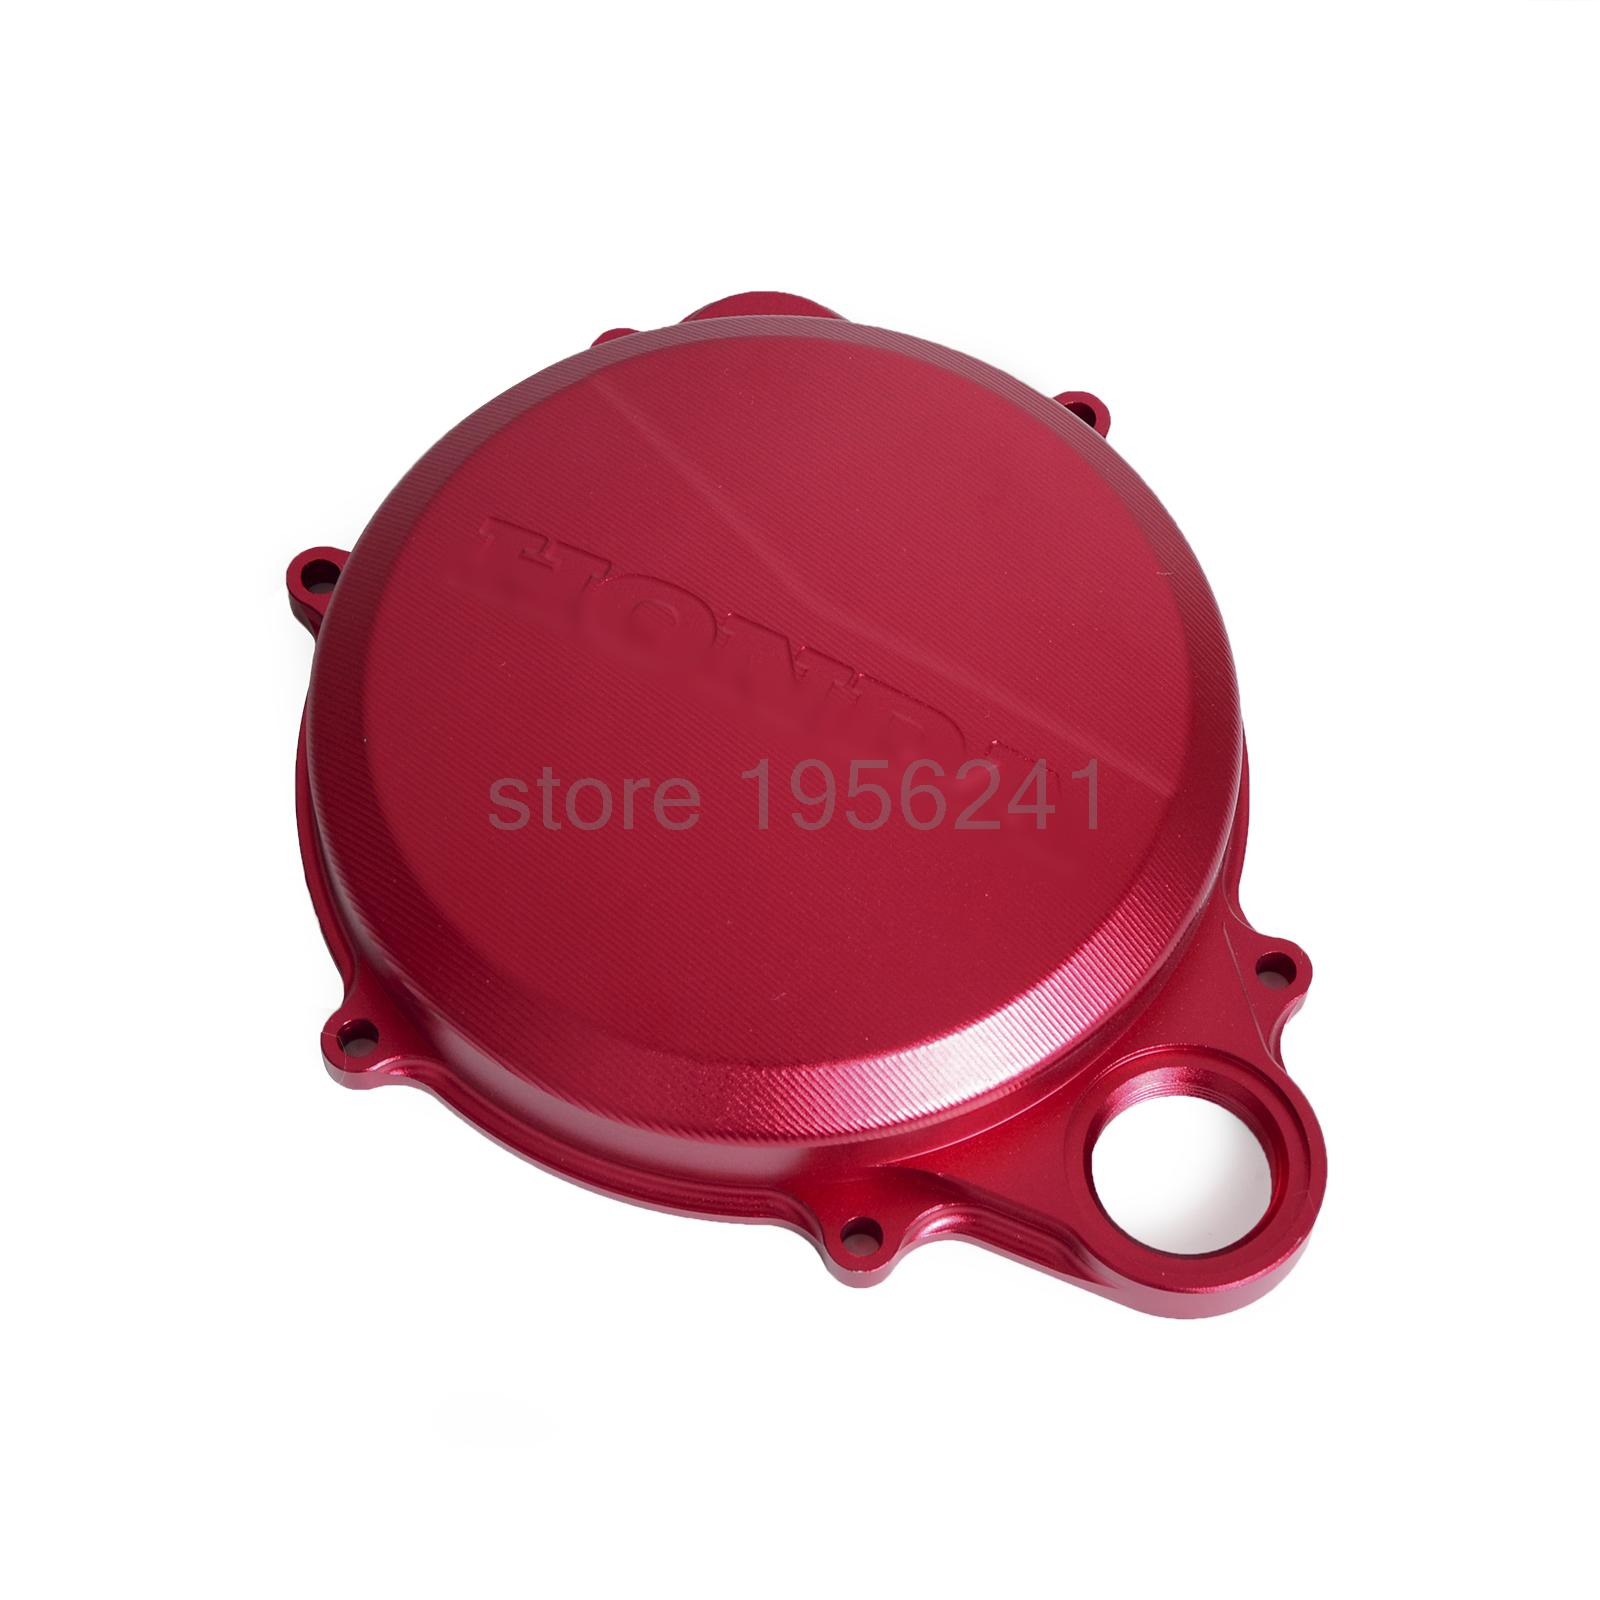 CNC Right Engine Clutch Cover for Honda CRF250R 2010 2011 2012 2013 2014 2015 2016 CRF 250R for honda crf 250r 450r 2004 2006 crf 250x 450x 2004 2015 red motorcycle dirt bike off road cnc pivot brake clutch lever